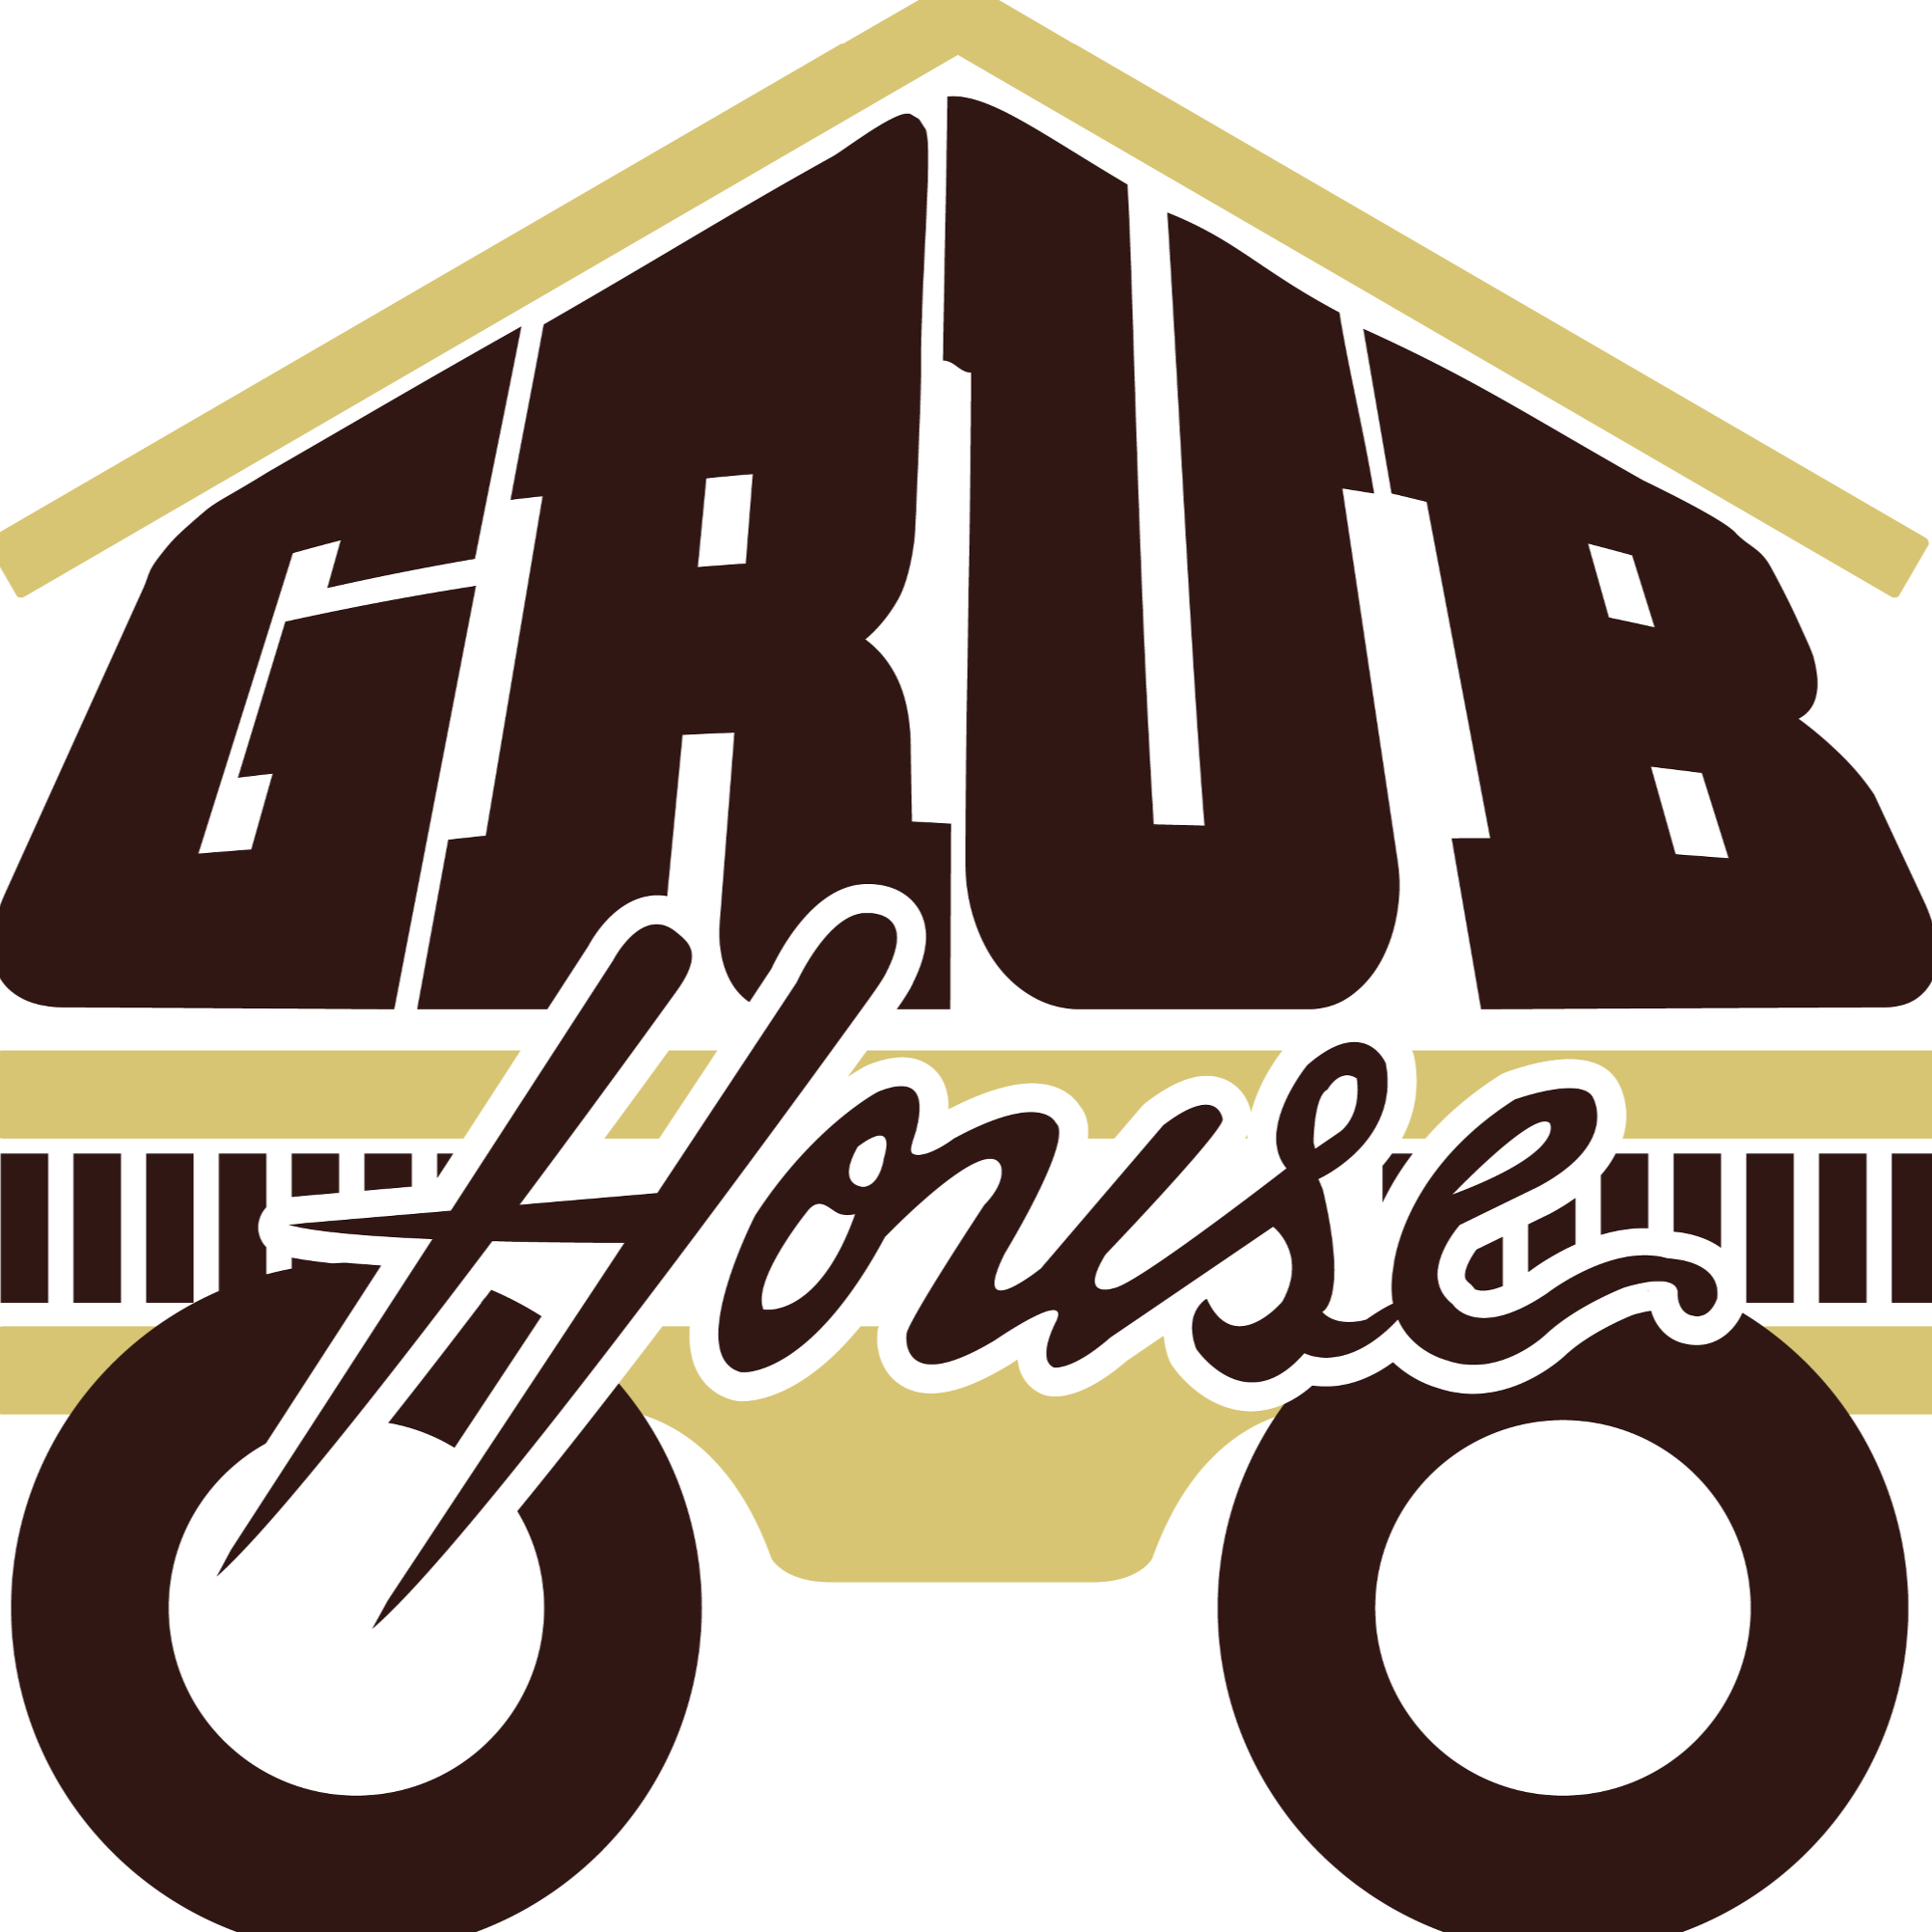 The Grub House logo